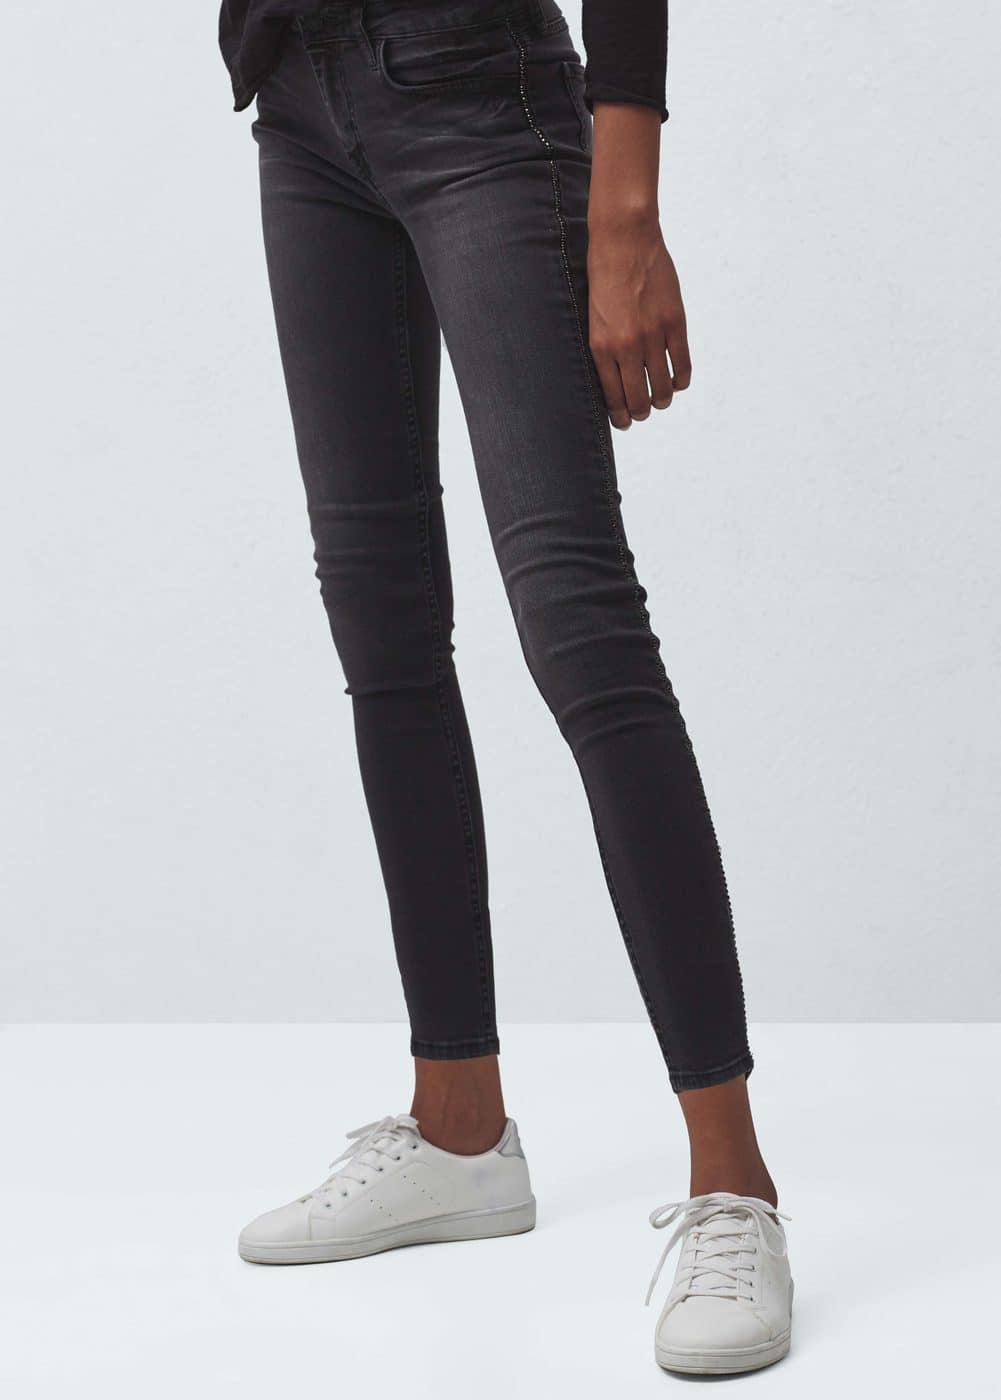 Shinny usa shinny crop skinny jeans women mango usa